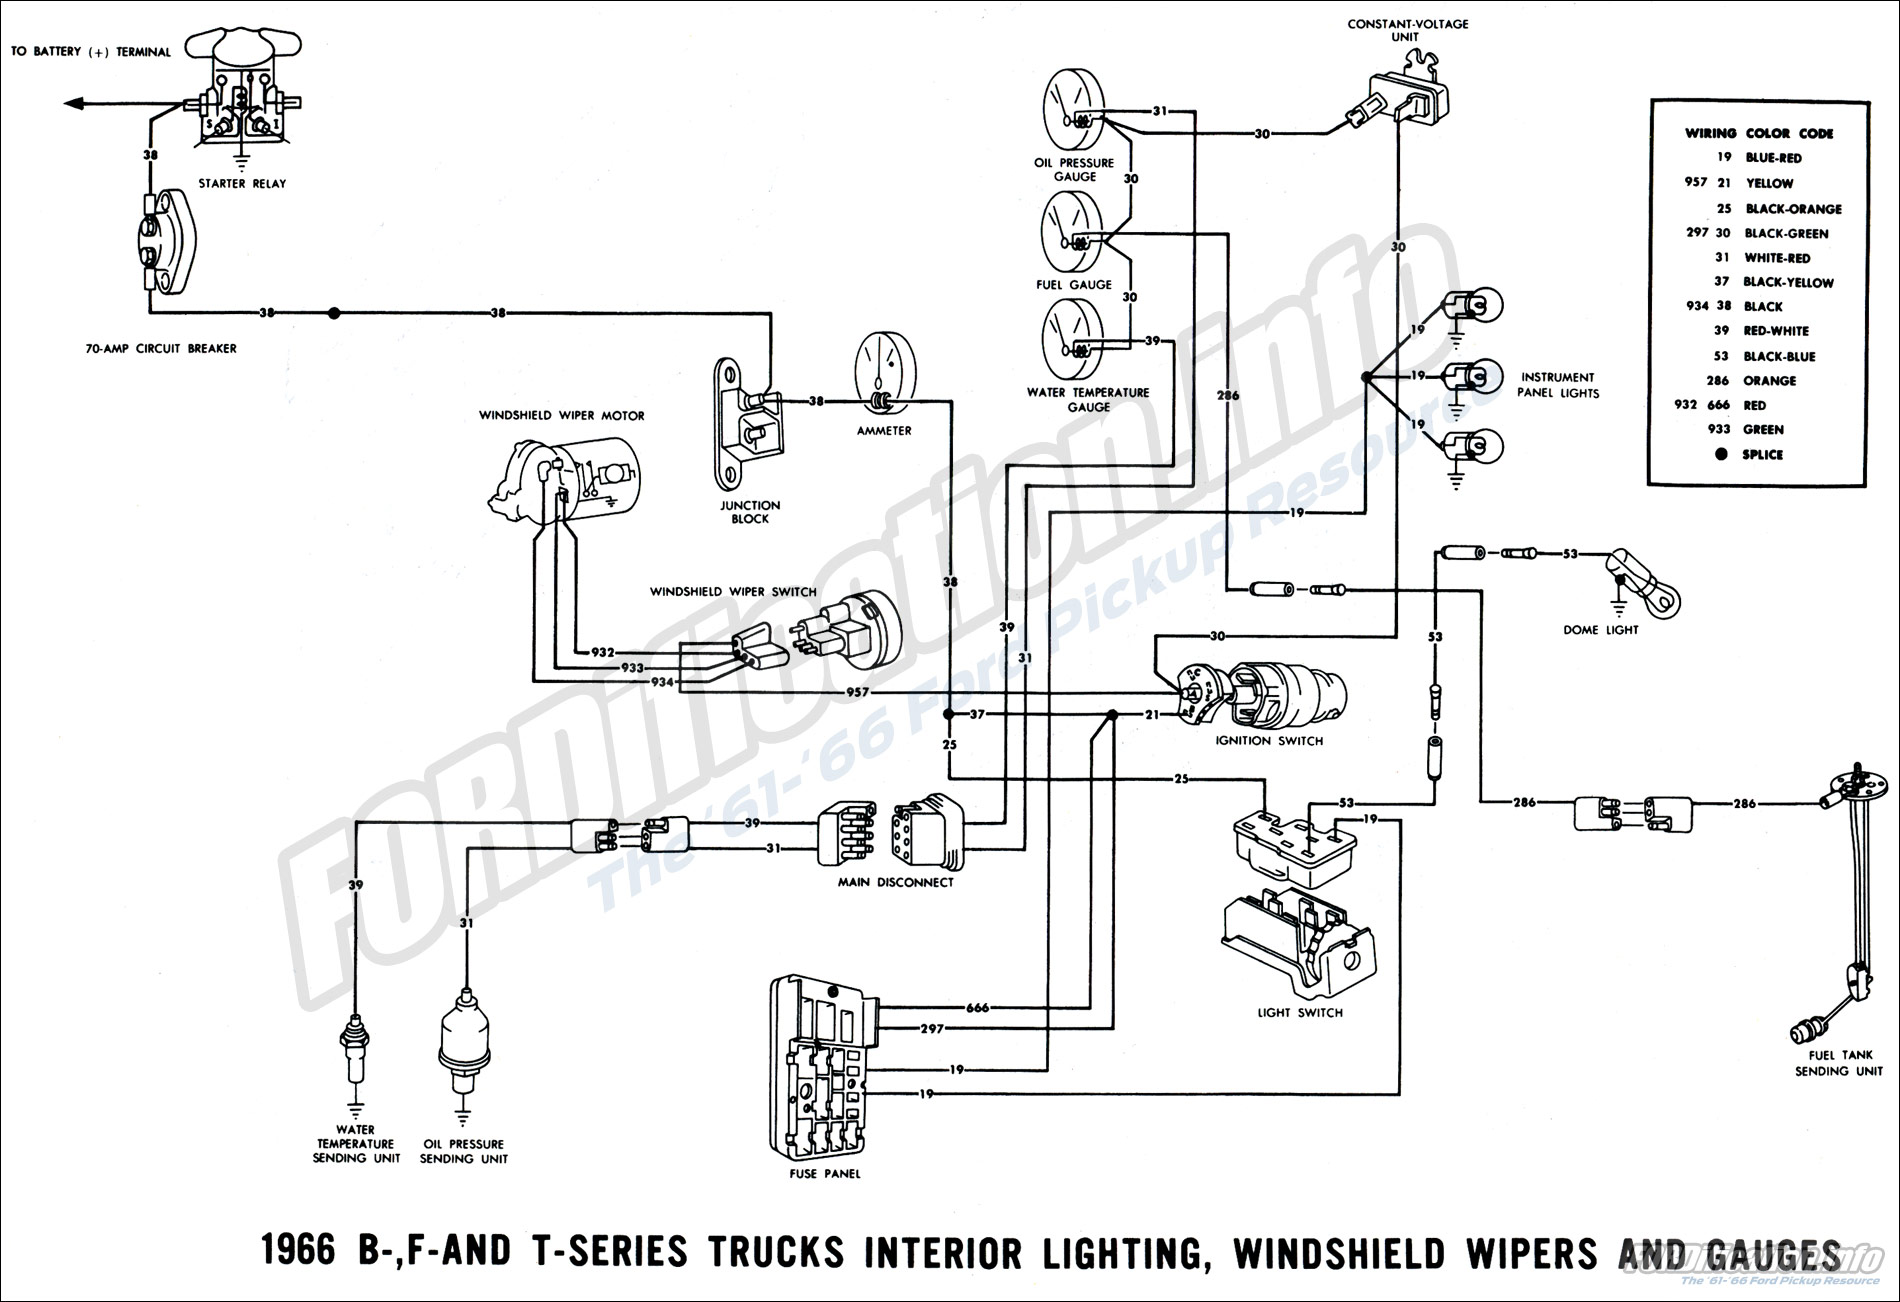 66 ford mustang wiring diagram object class of air and reservation system f100 22 images